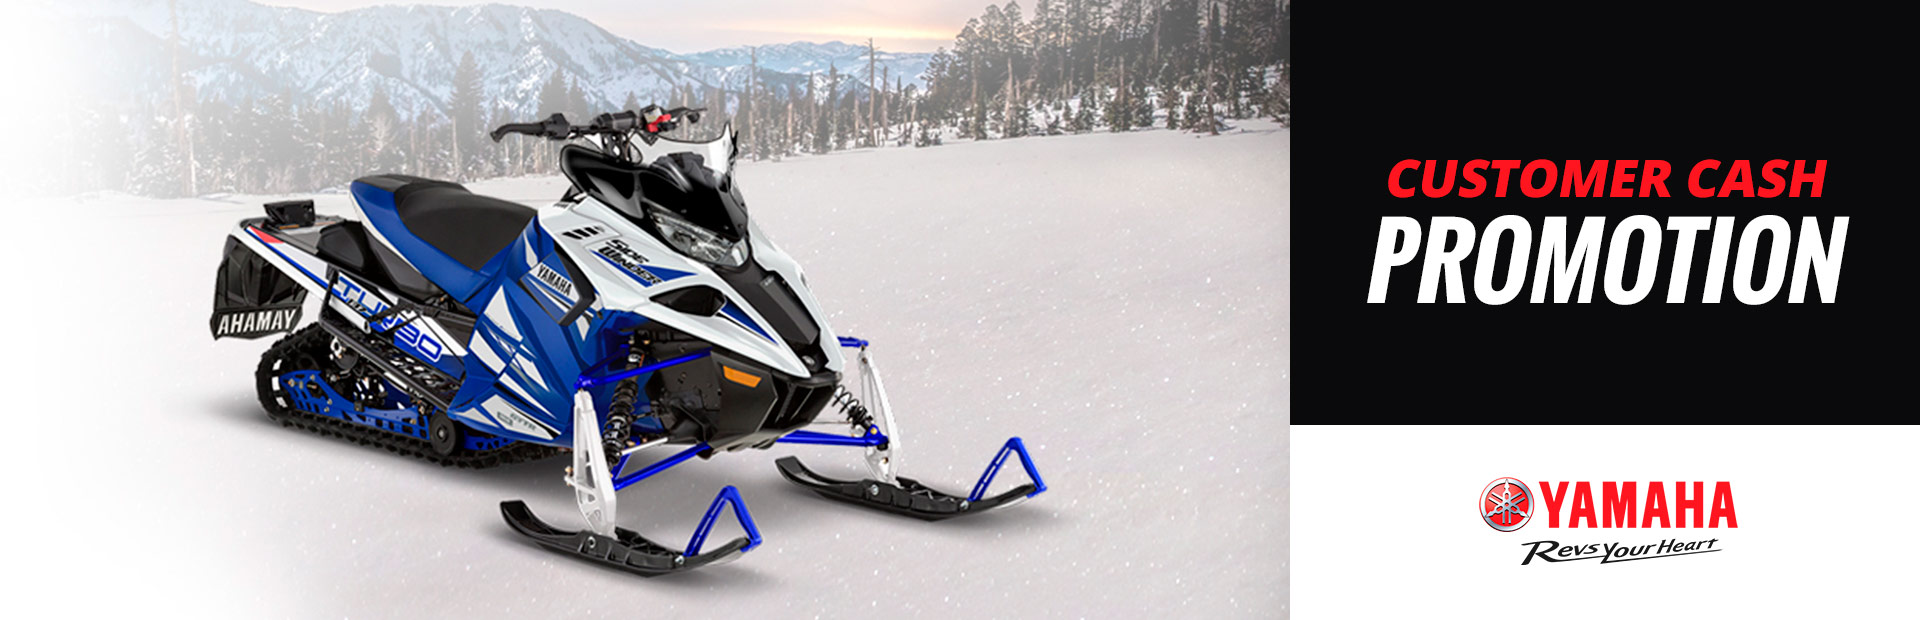 Yamaha: Customer Cash - Snowmobile